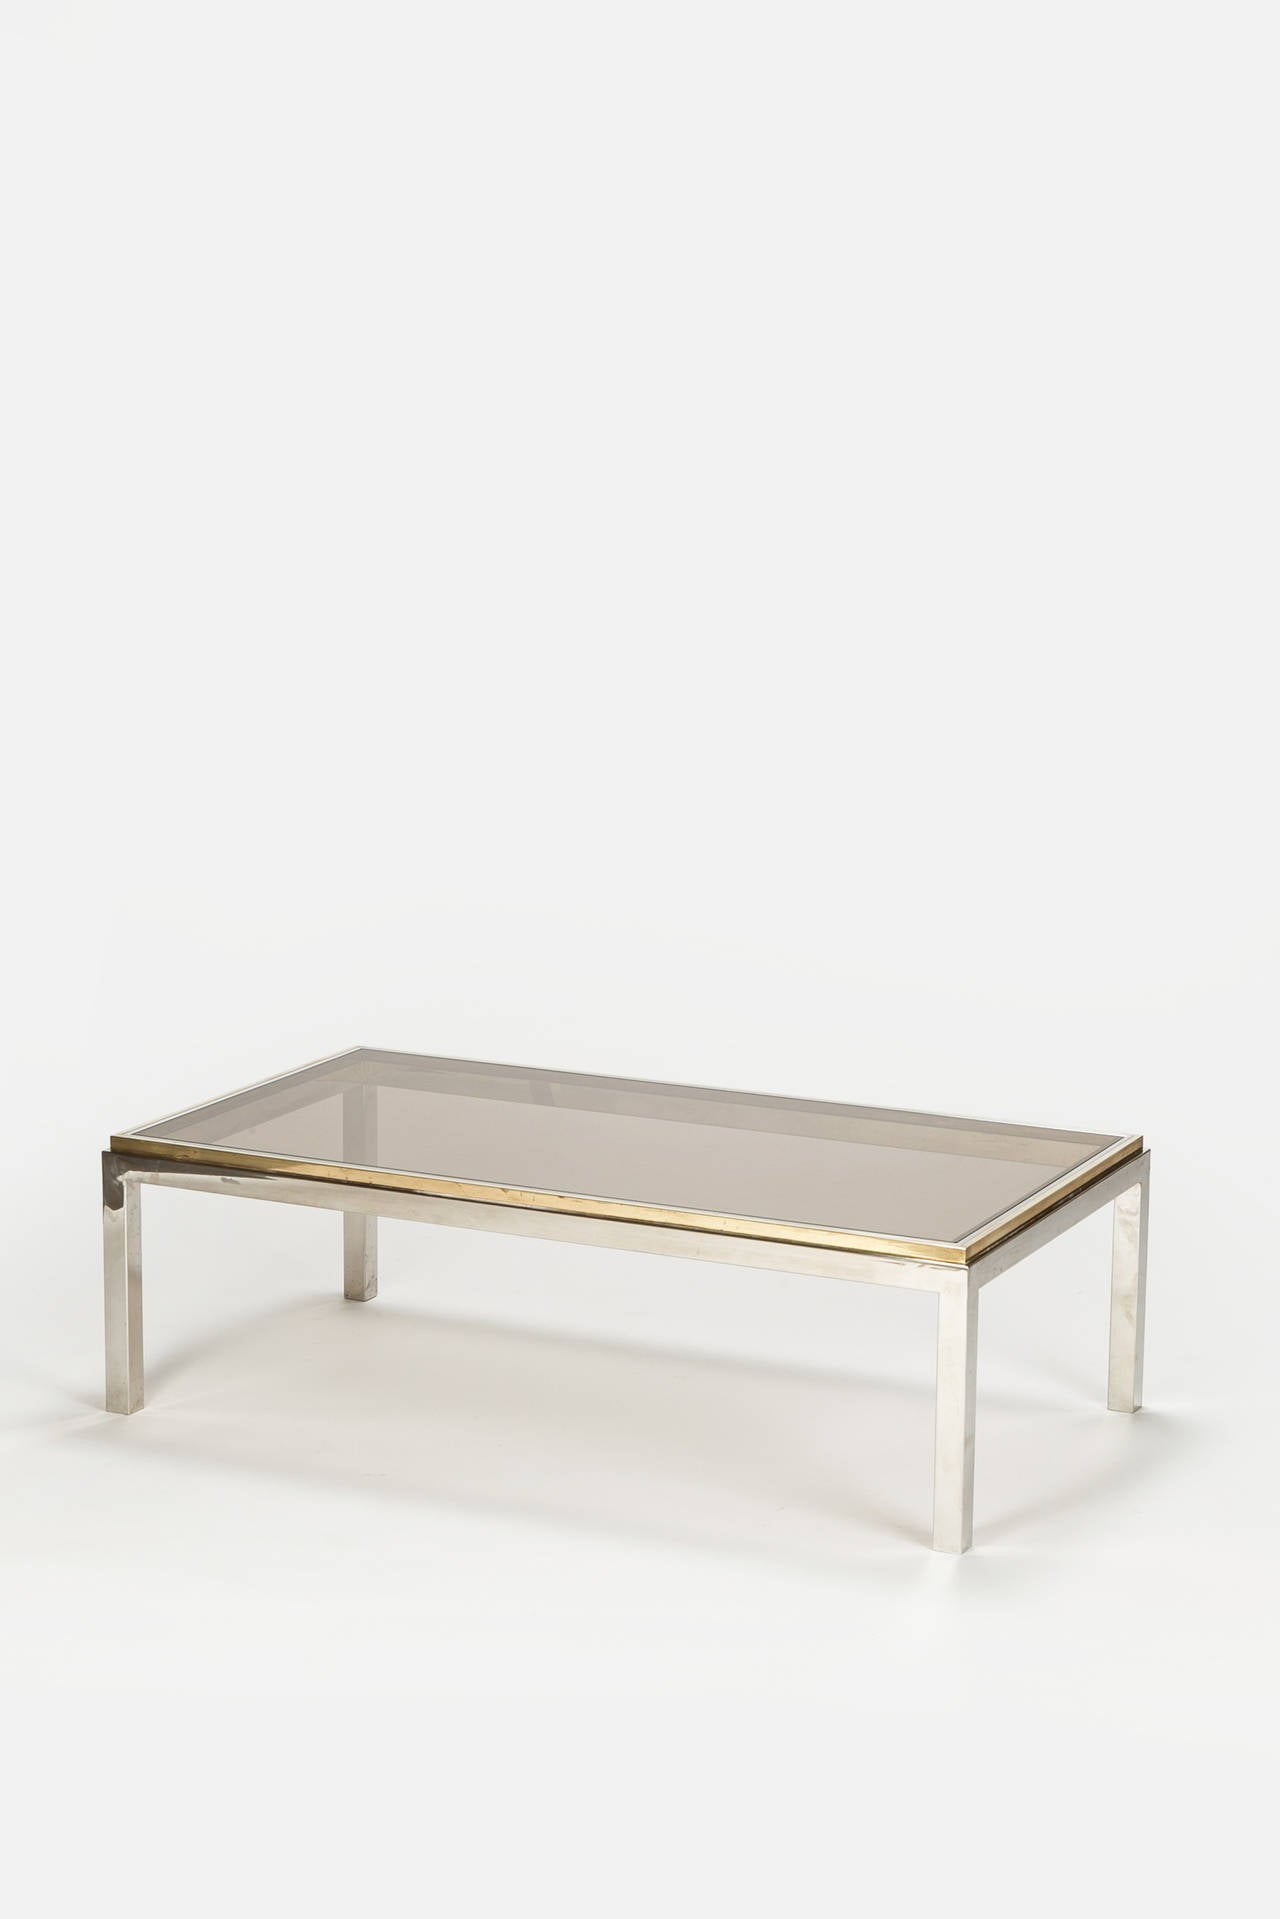 Flaminia Coffee Table Chrome Brass Smoked Glass by Willy Rizzo at